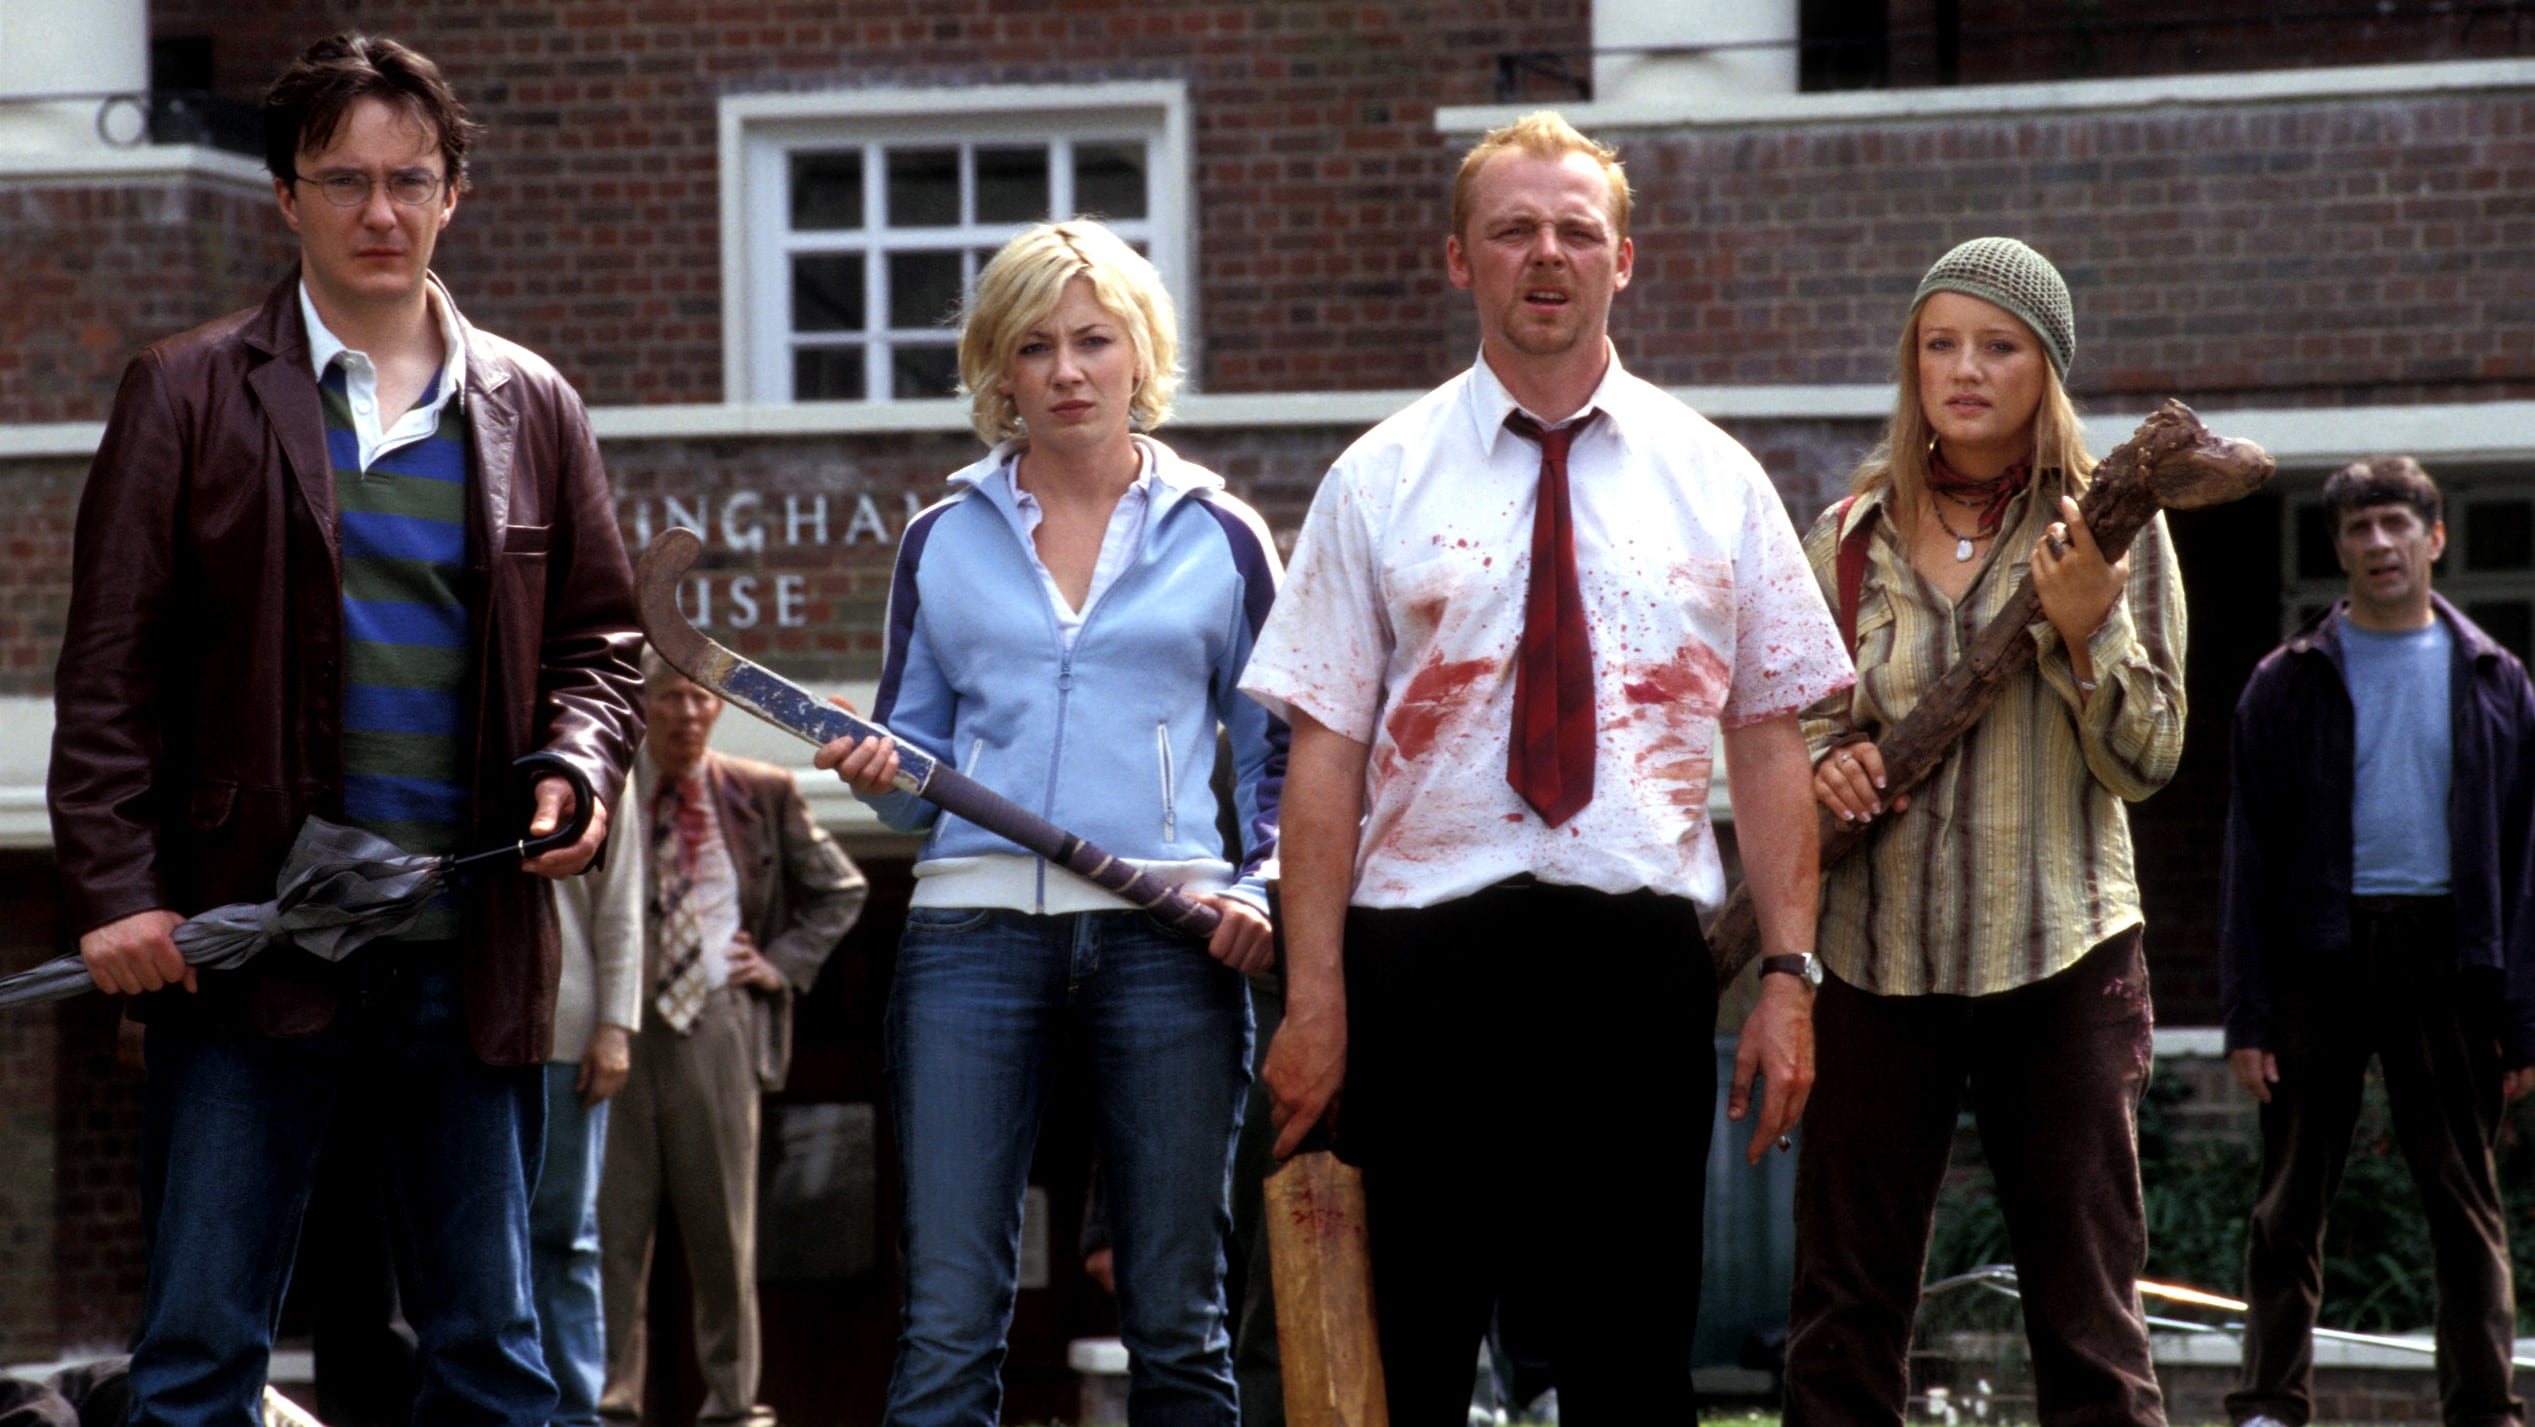 Shaun of the Dead backdrop